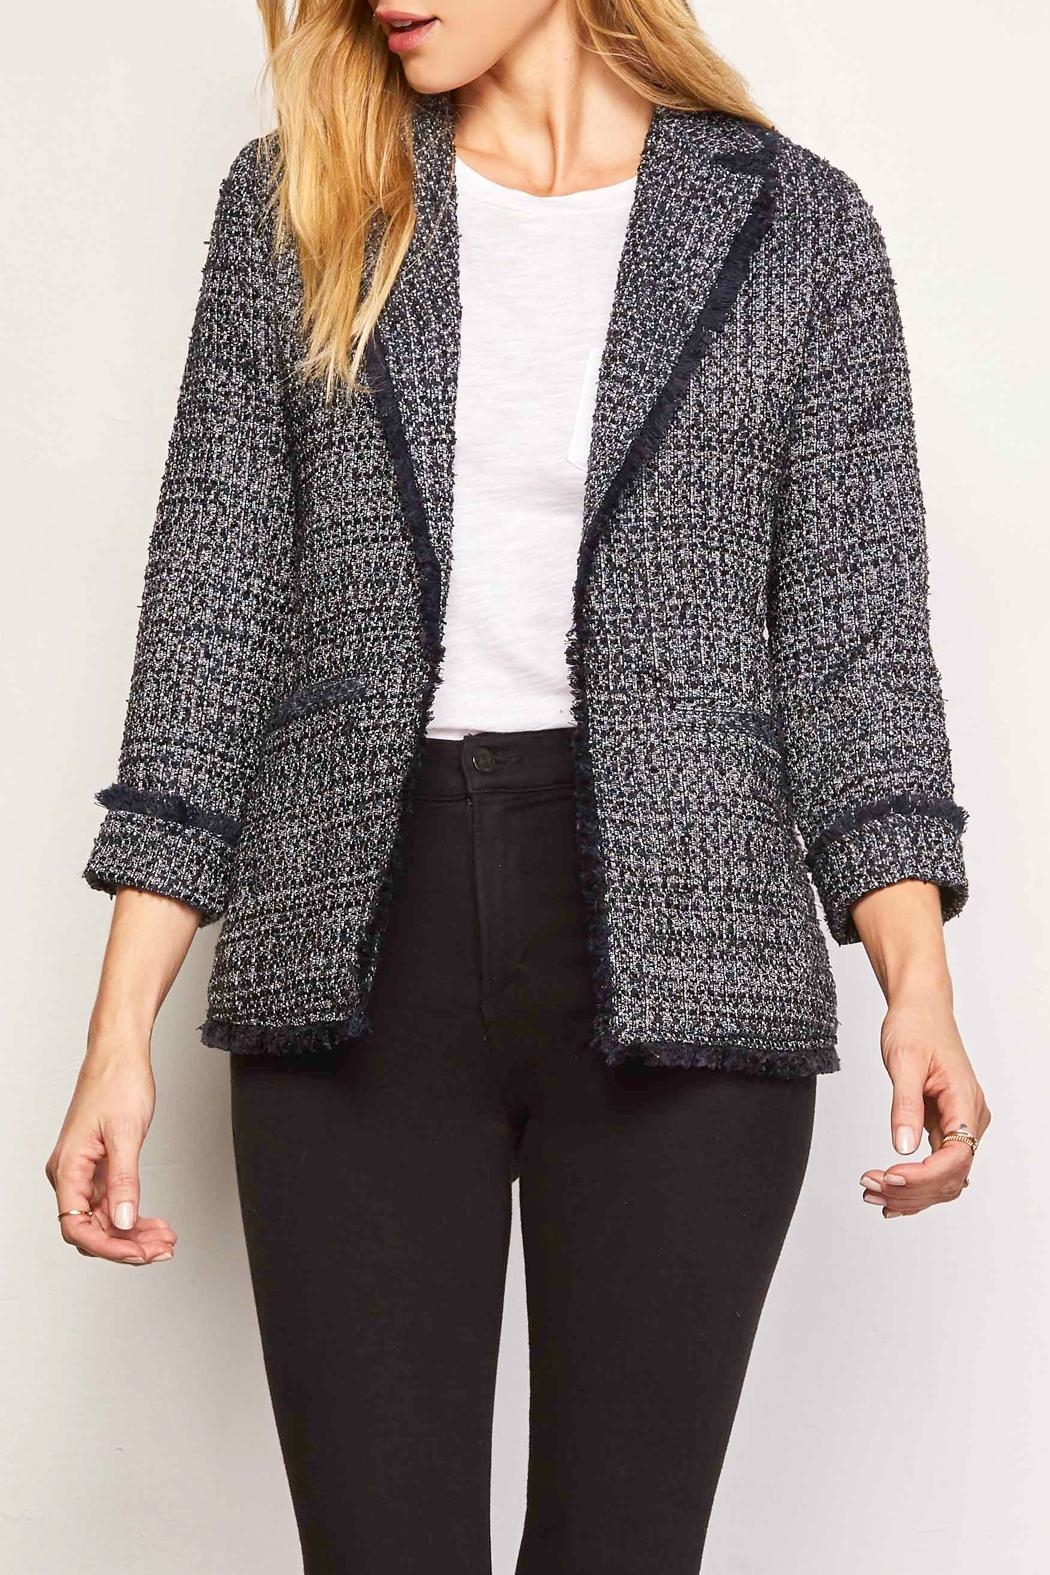 bf344575e Cupcakes and Cashmere Gregory Tweed Blazer from California by ...